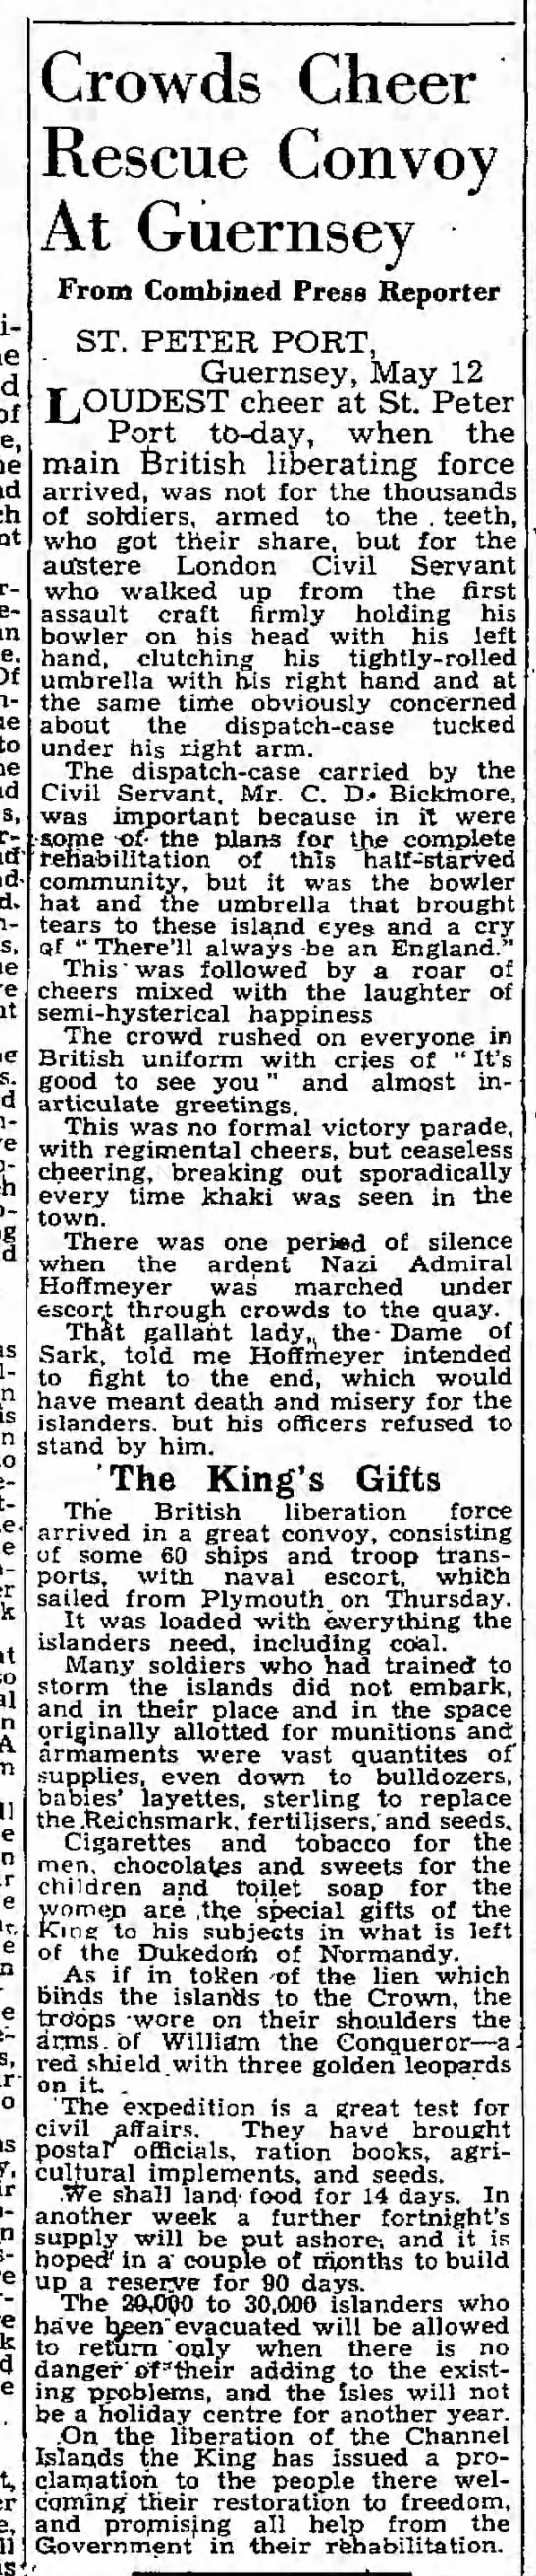 """""""Crowds Cheer Rescue Convoy at Guernsey"""" 5/13/1945 -"""